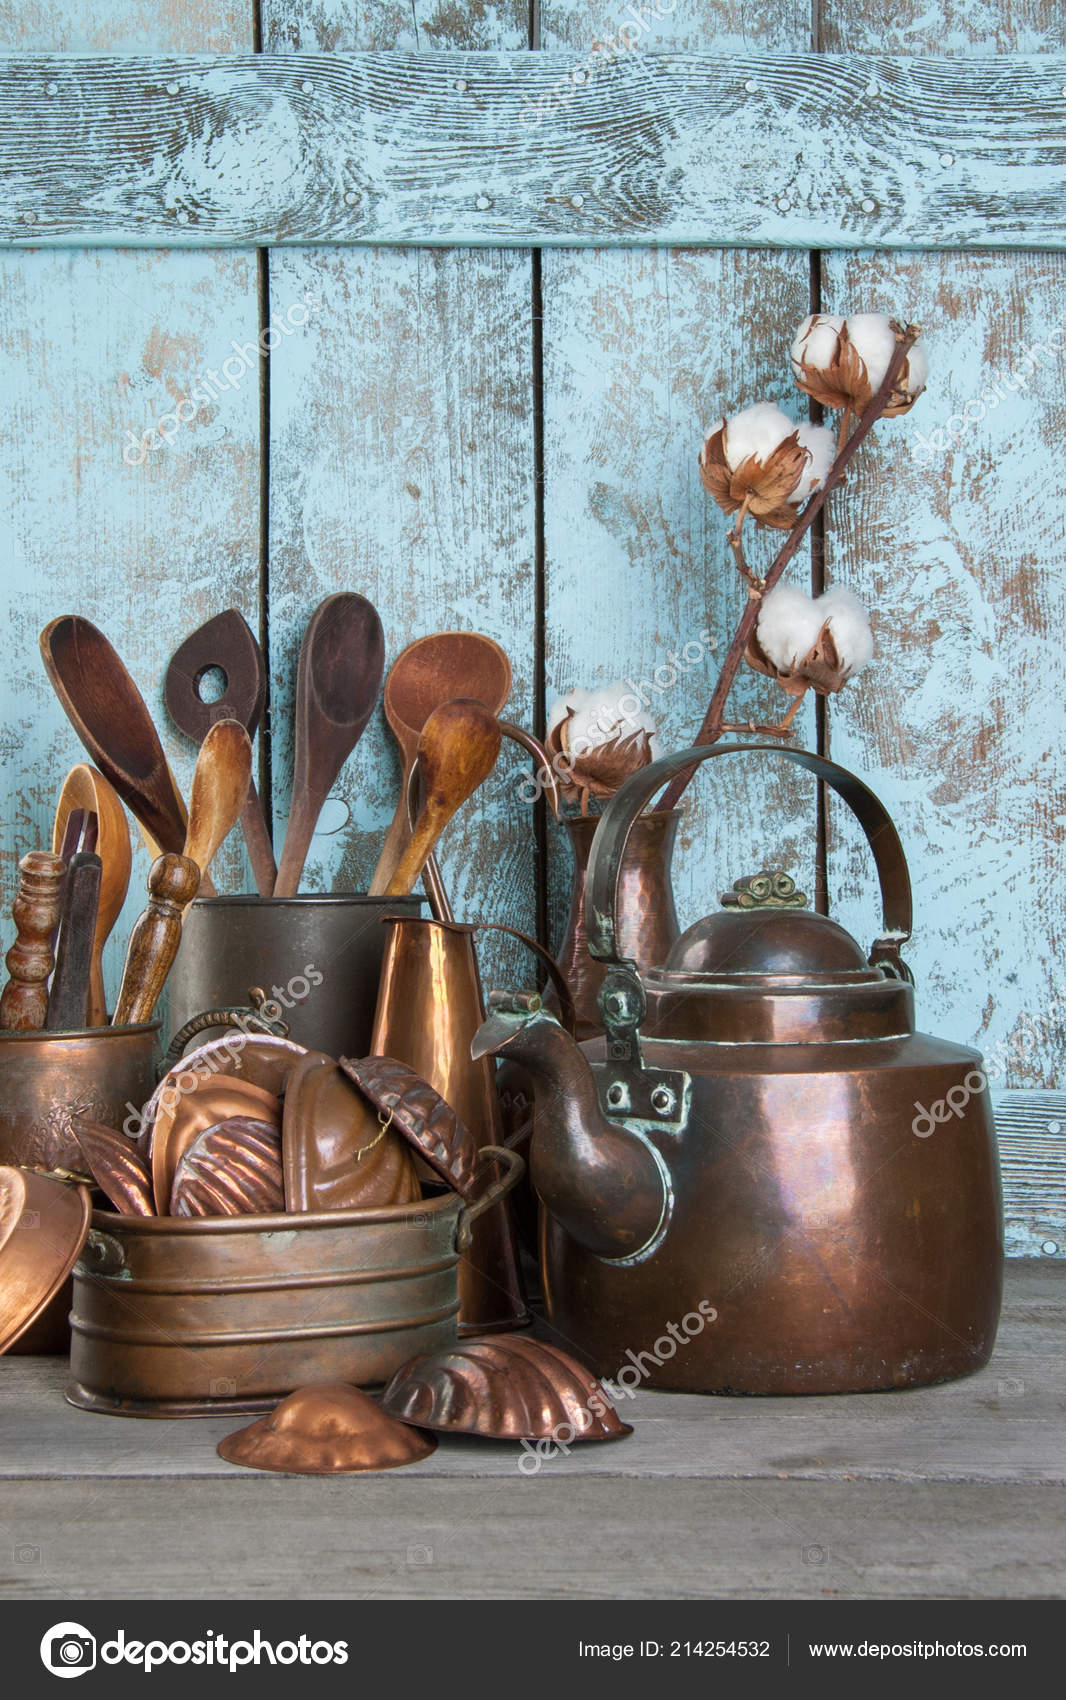 Vintage Copper Kitchen Utensils Wooden Blue Background Props Food Photography Stock Photo C Voisine 214254532